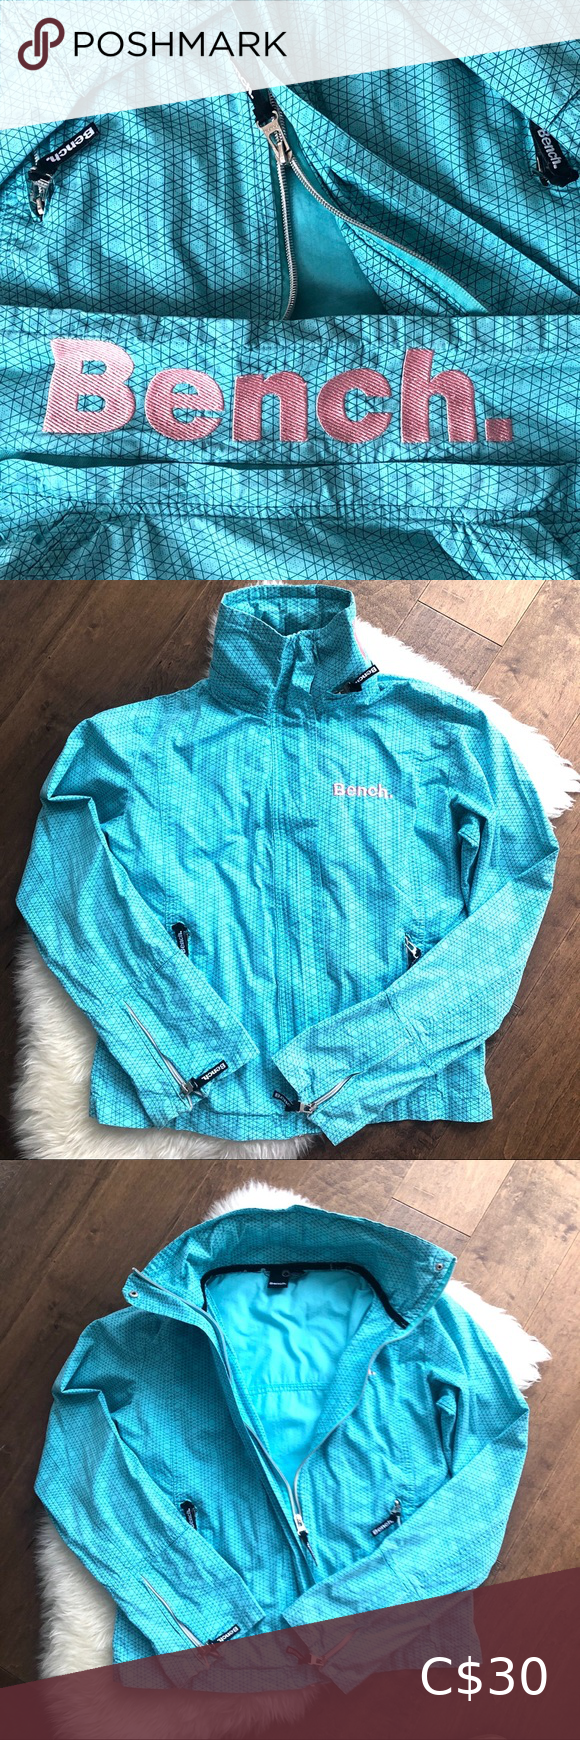 Pretty Ocean Blue Bench Jacket In 2020 Bench Jackets Clothes Design Fitness Fashion